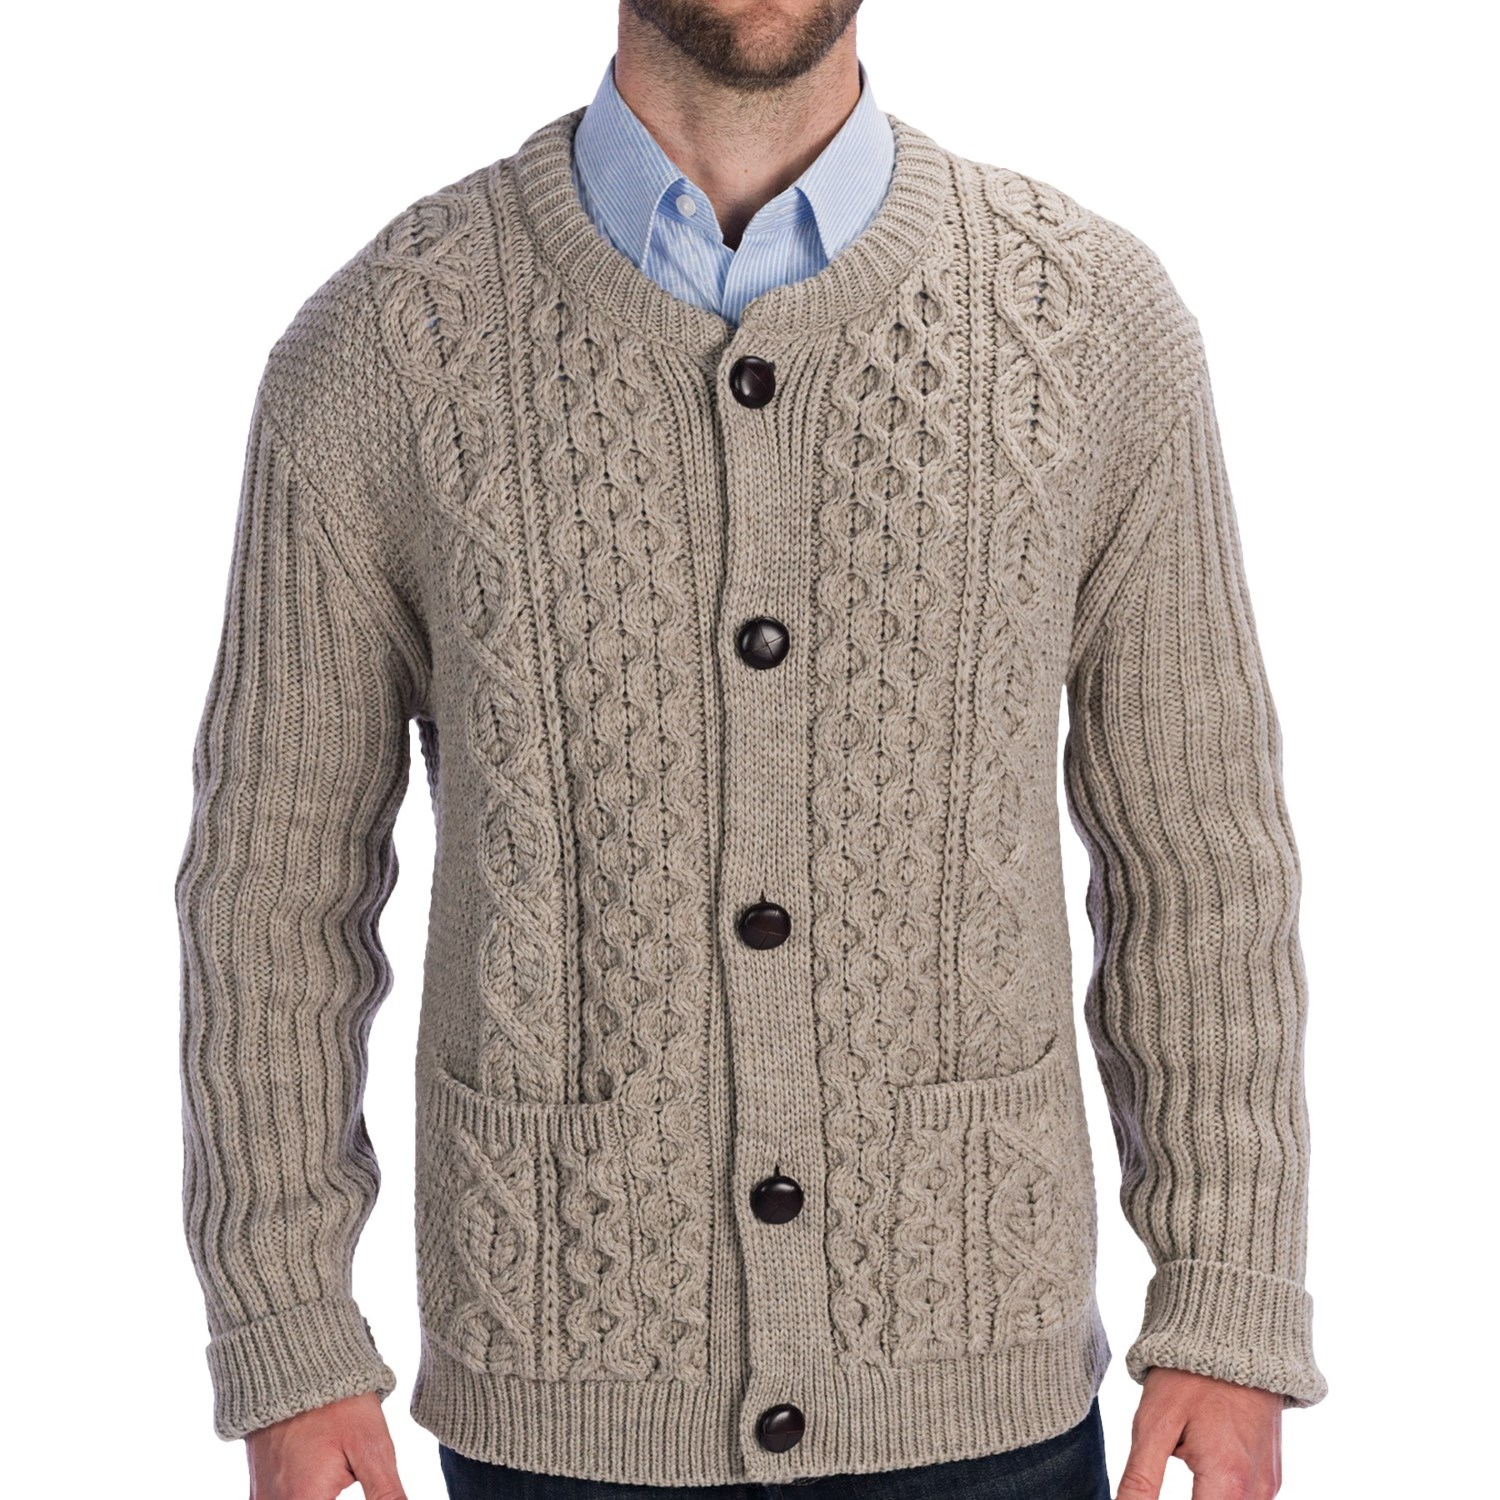 Men Cardigan Sweater 12